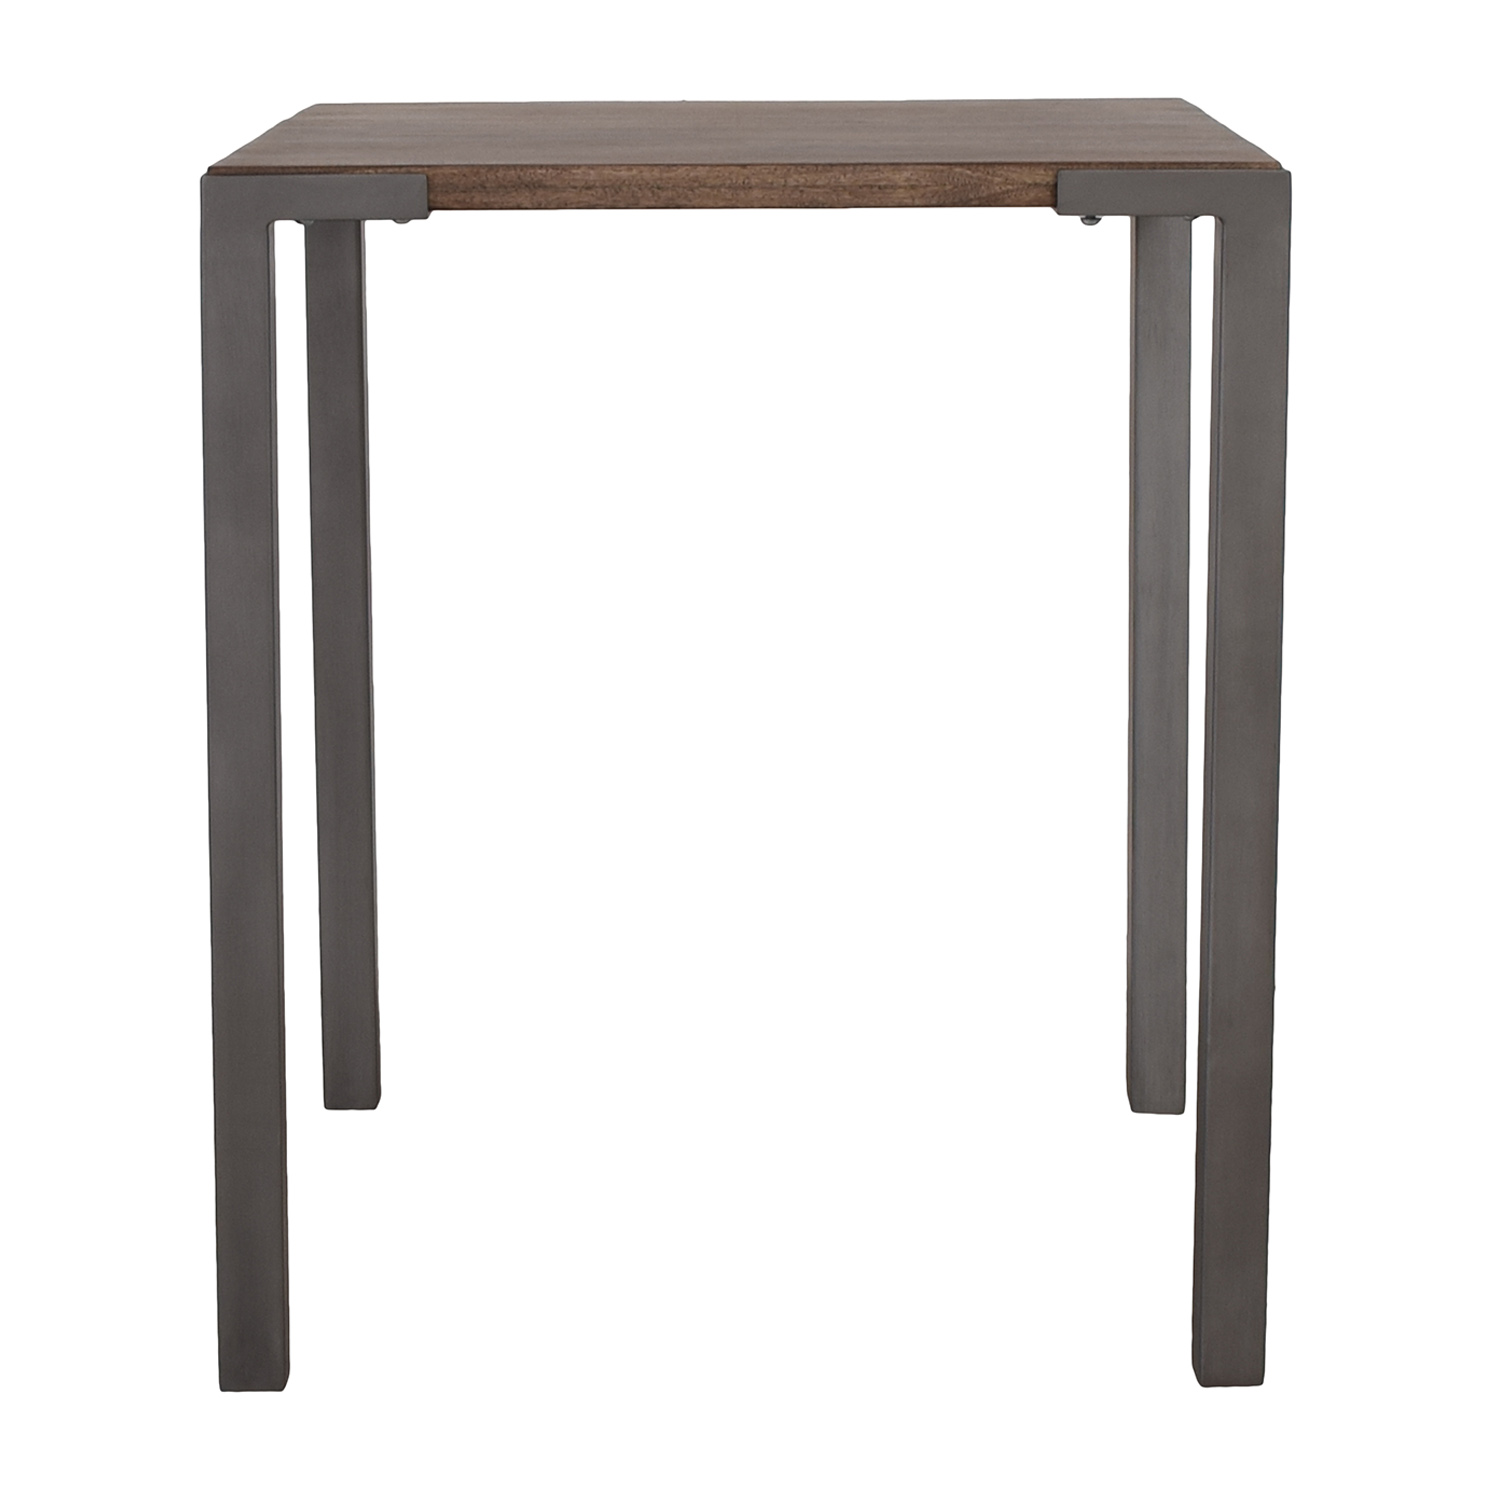 CB2 Stilt 2 Rustic Top Counter Table / Sofas